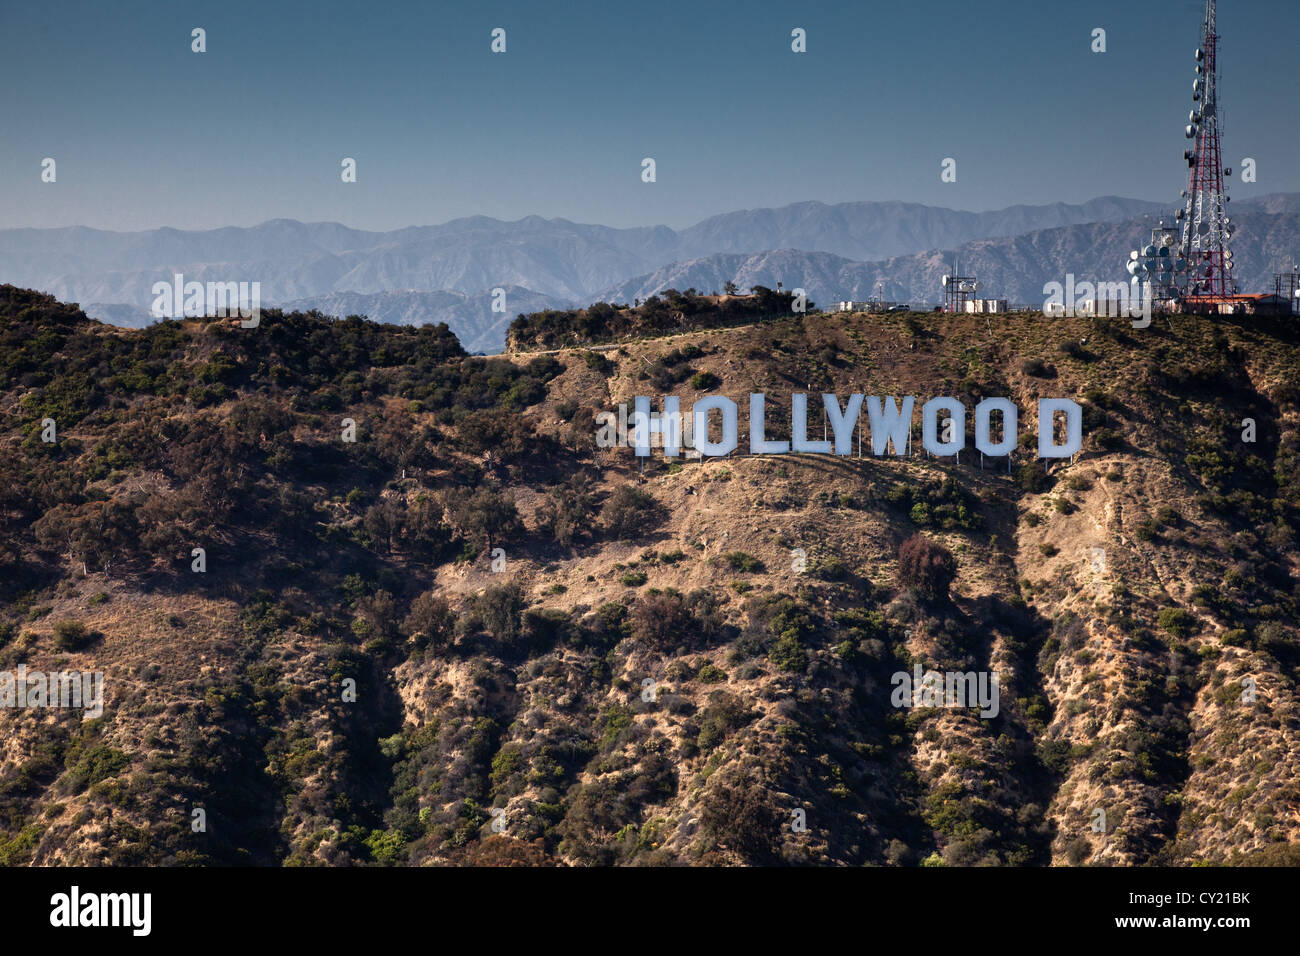 The iconic Hollywood sign in the Hollywood HIlls, Los Angeles. - Stock Image